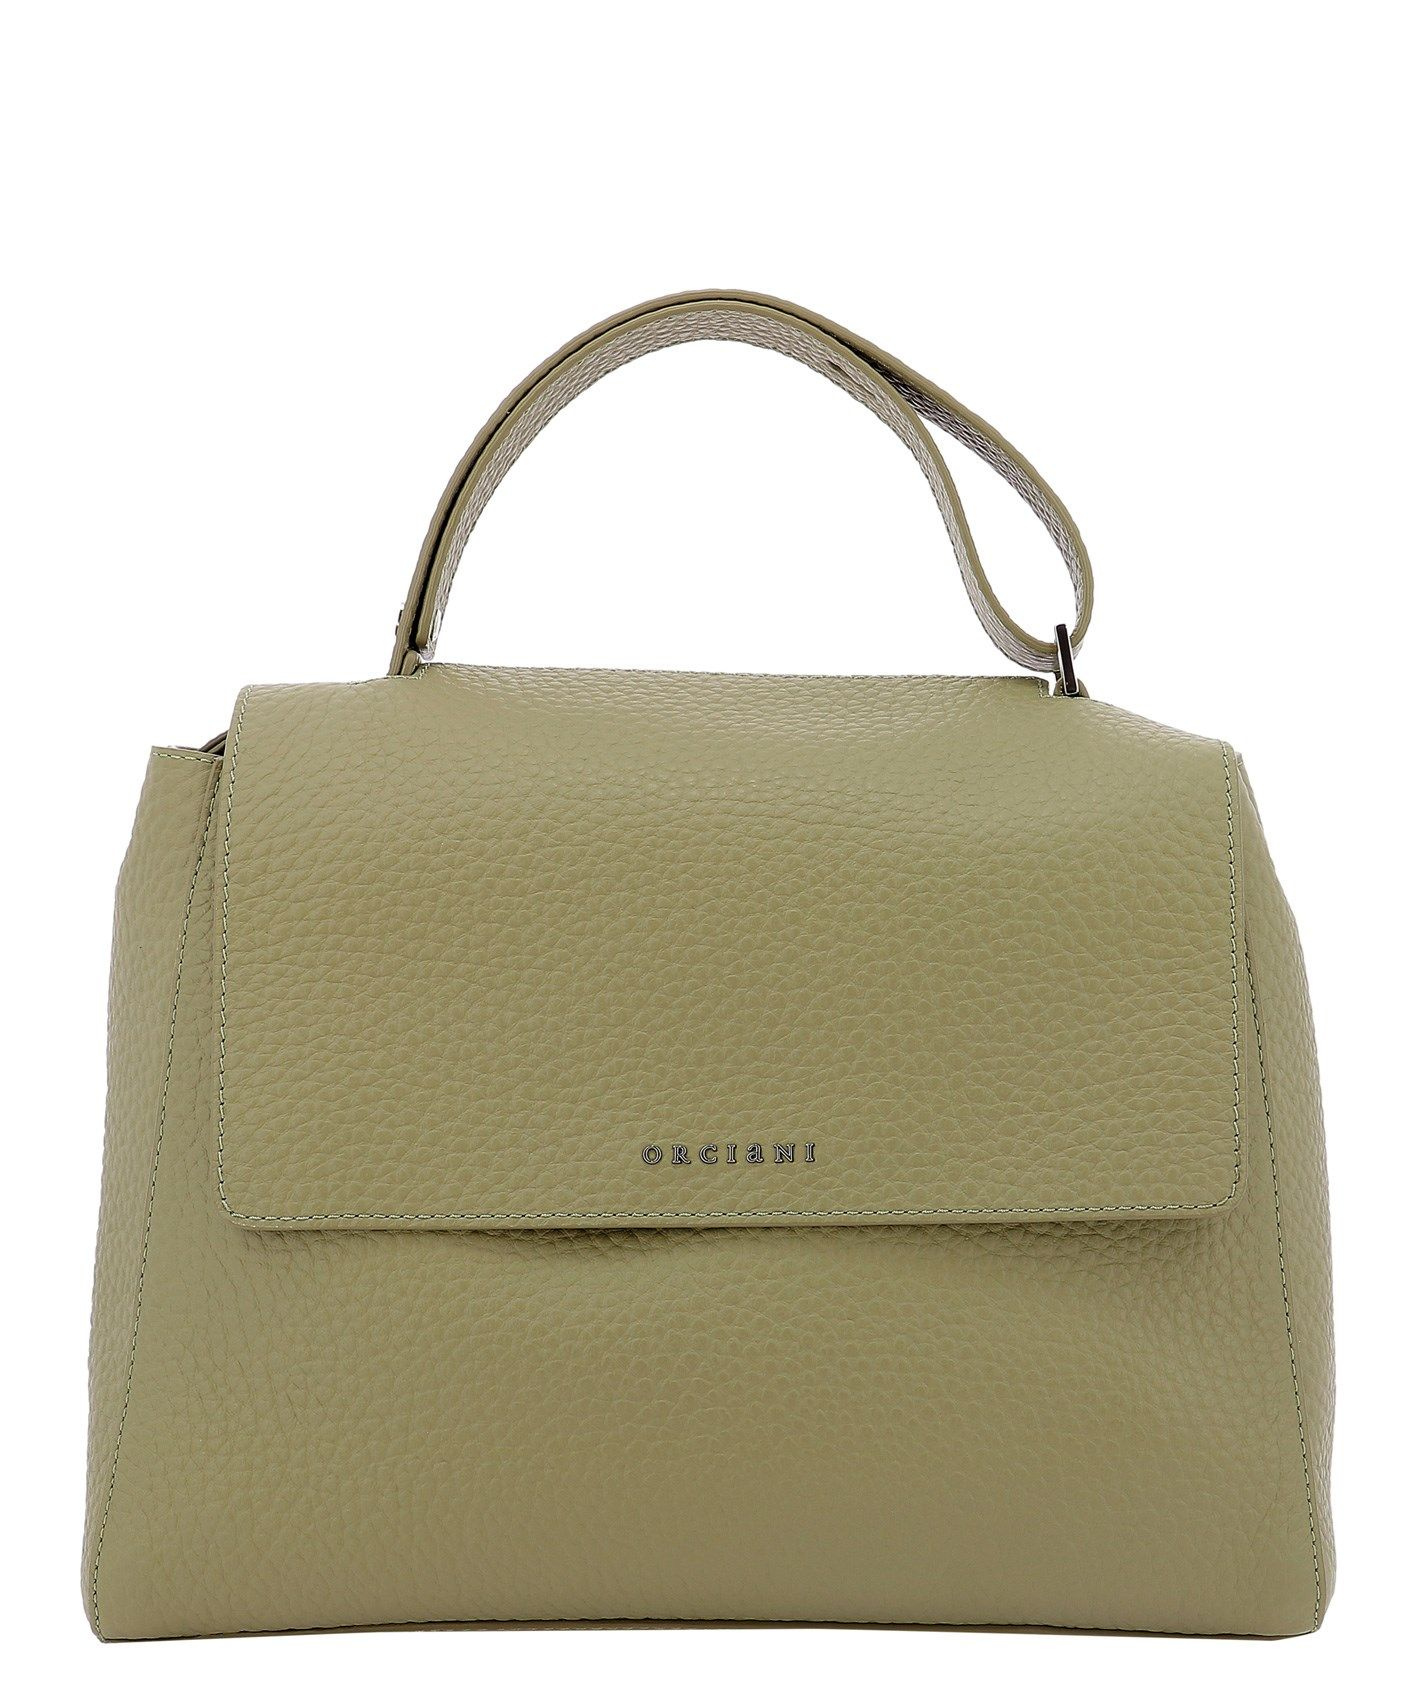 Orciani Leathers ORCIANI WOMEN'S BT2006SOFTKAKI GREEN OTHER MATERIALS SHOULDER BAG